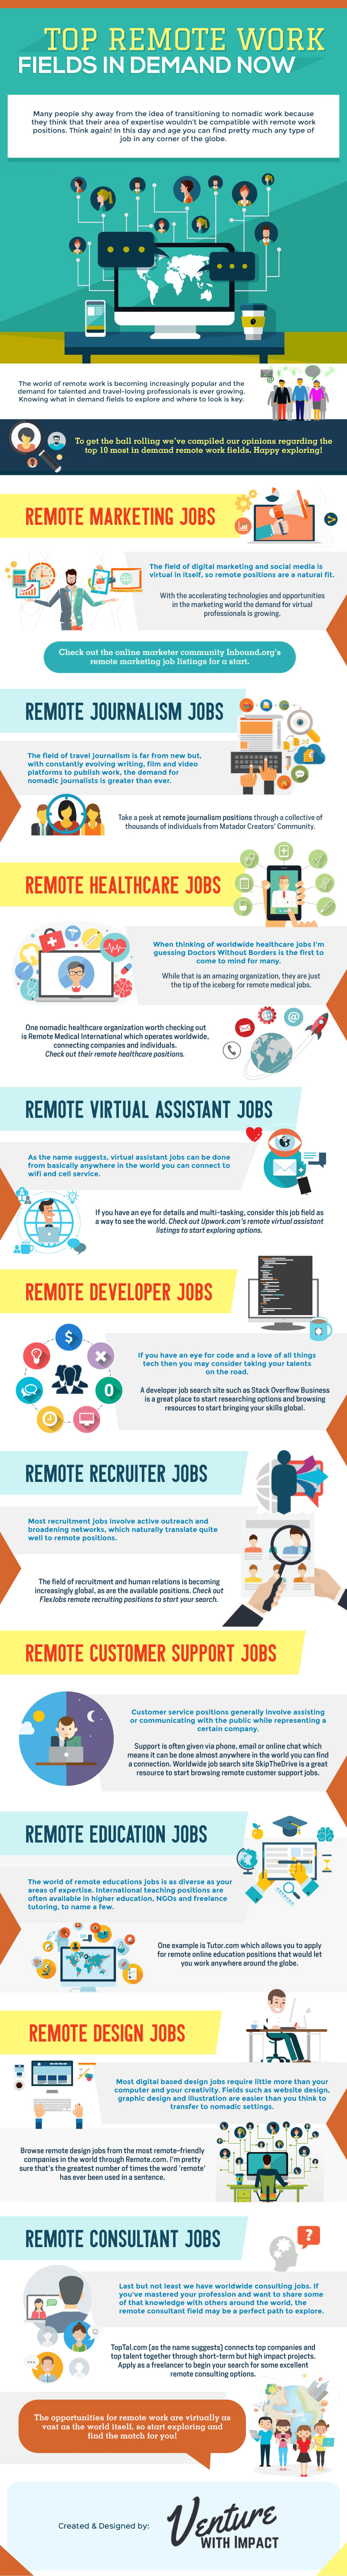 10-Remote-Work-Fields-In-Demand